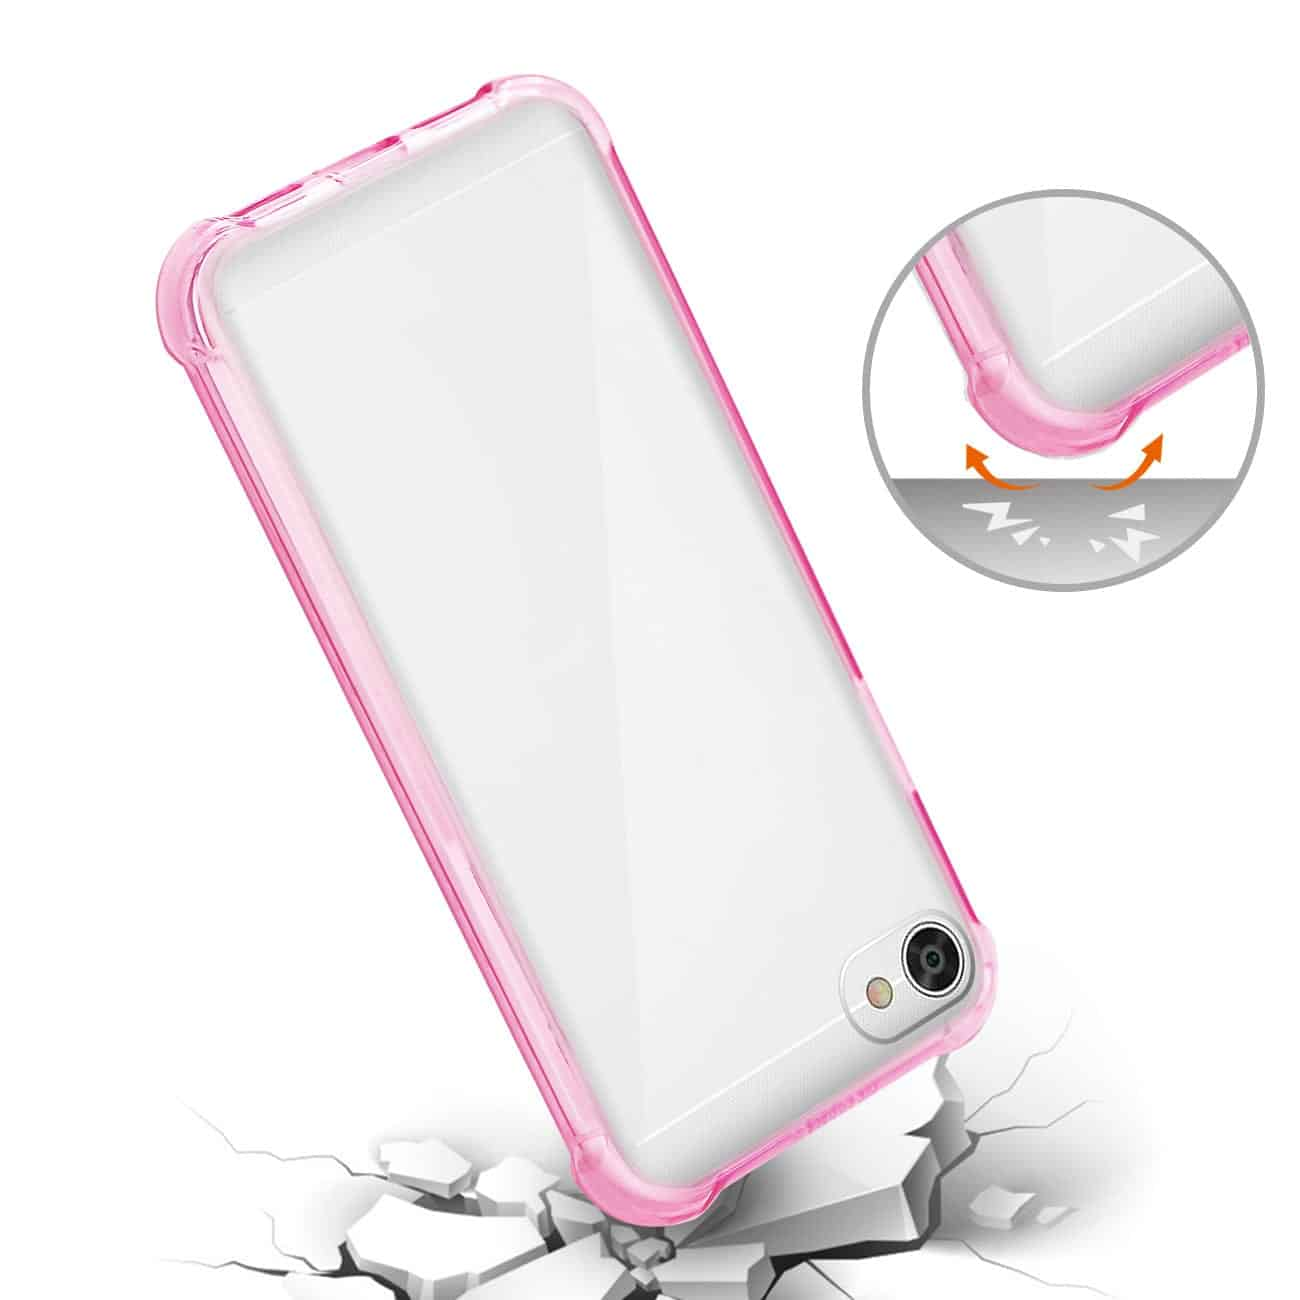 ALCATEL CRAVE CLEAR BUMPER CASE WITH AIR CUSHION PROTECTION IN CLEAR HOT PINK